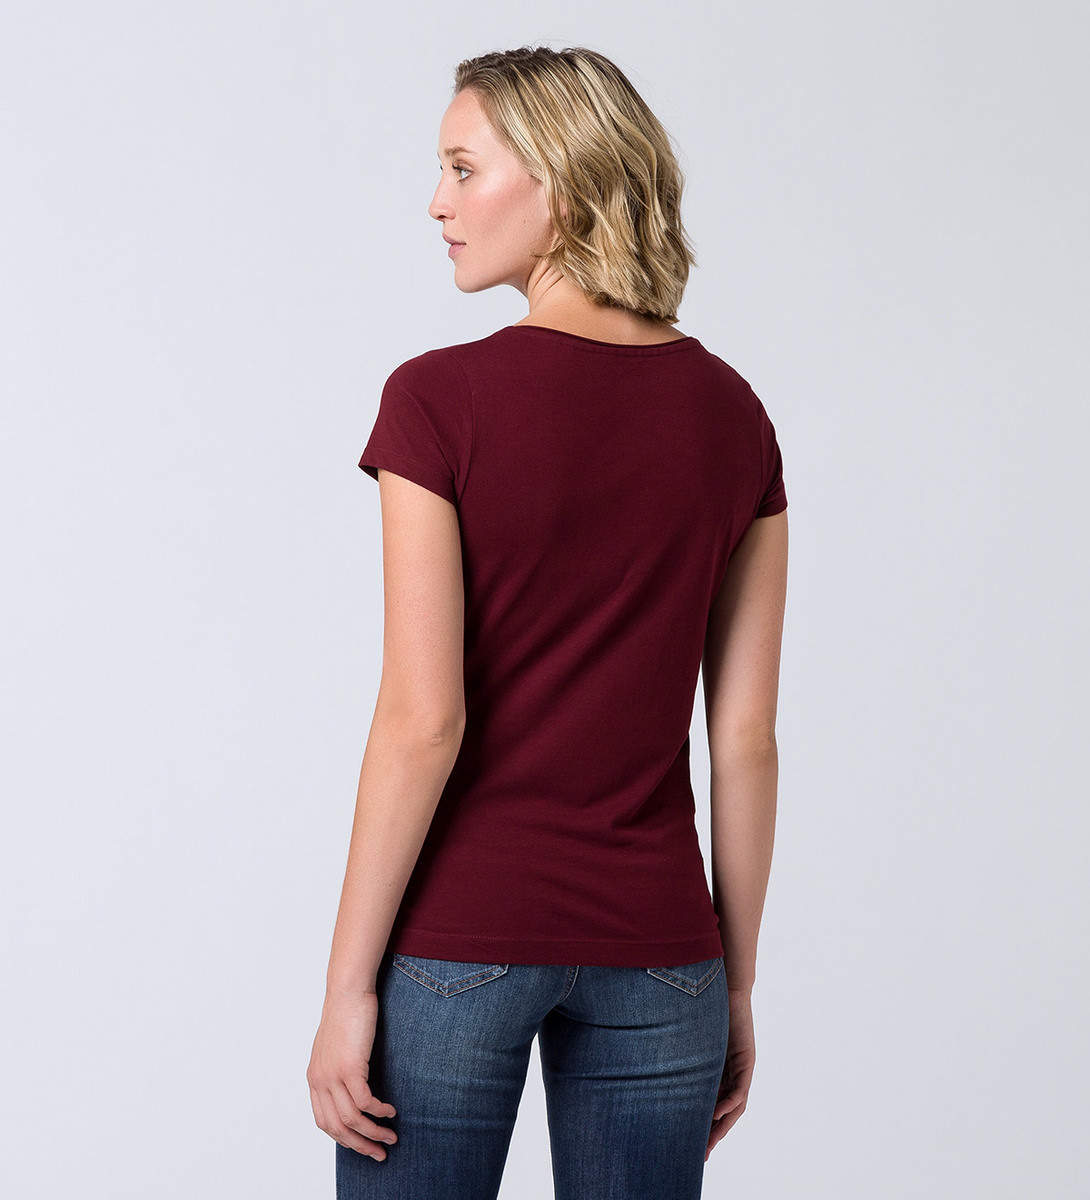 T-Shirt mit Statementprint in brick red